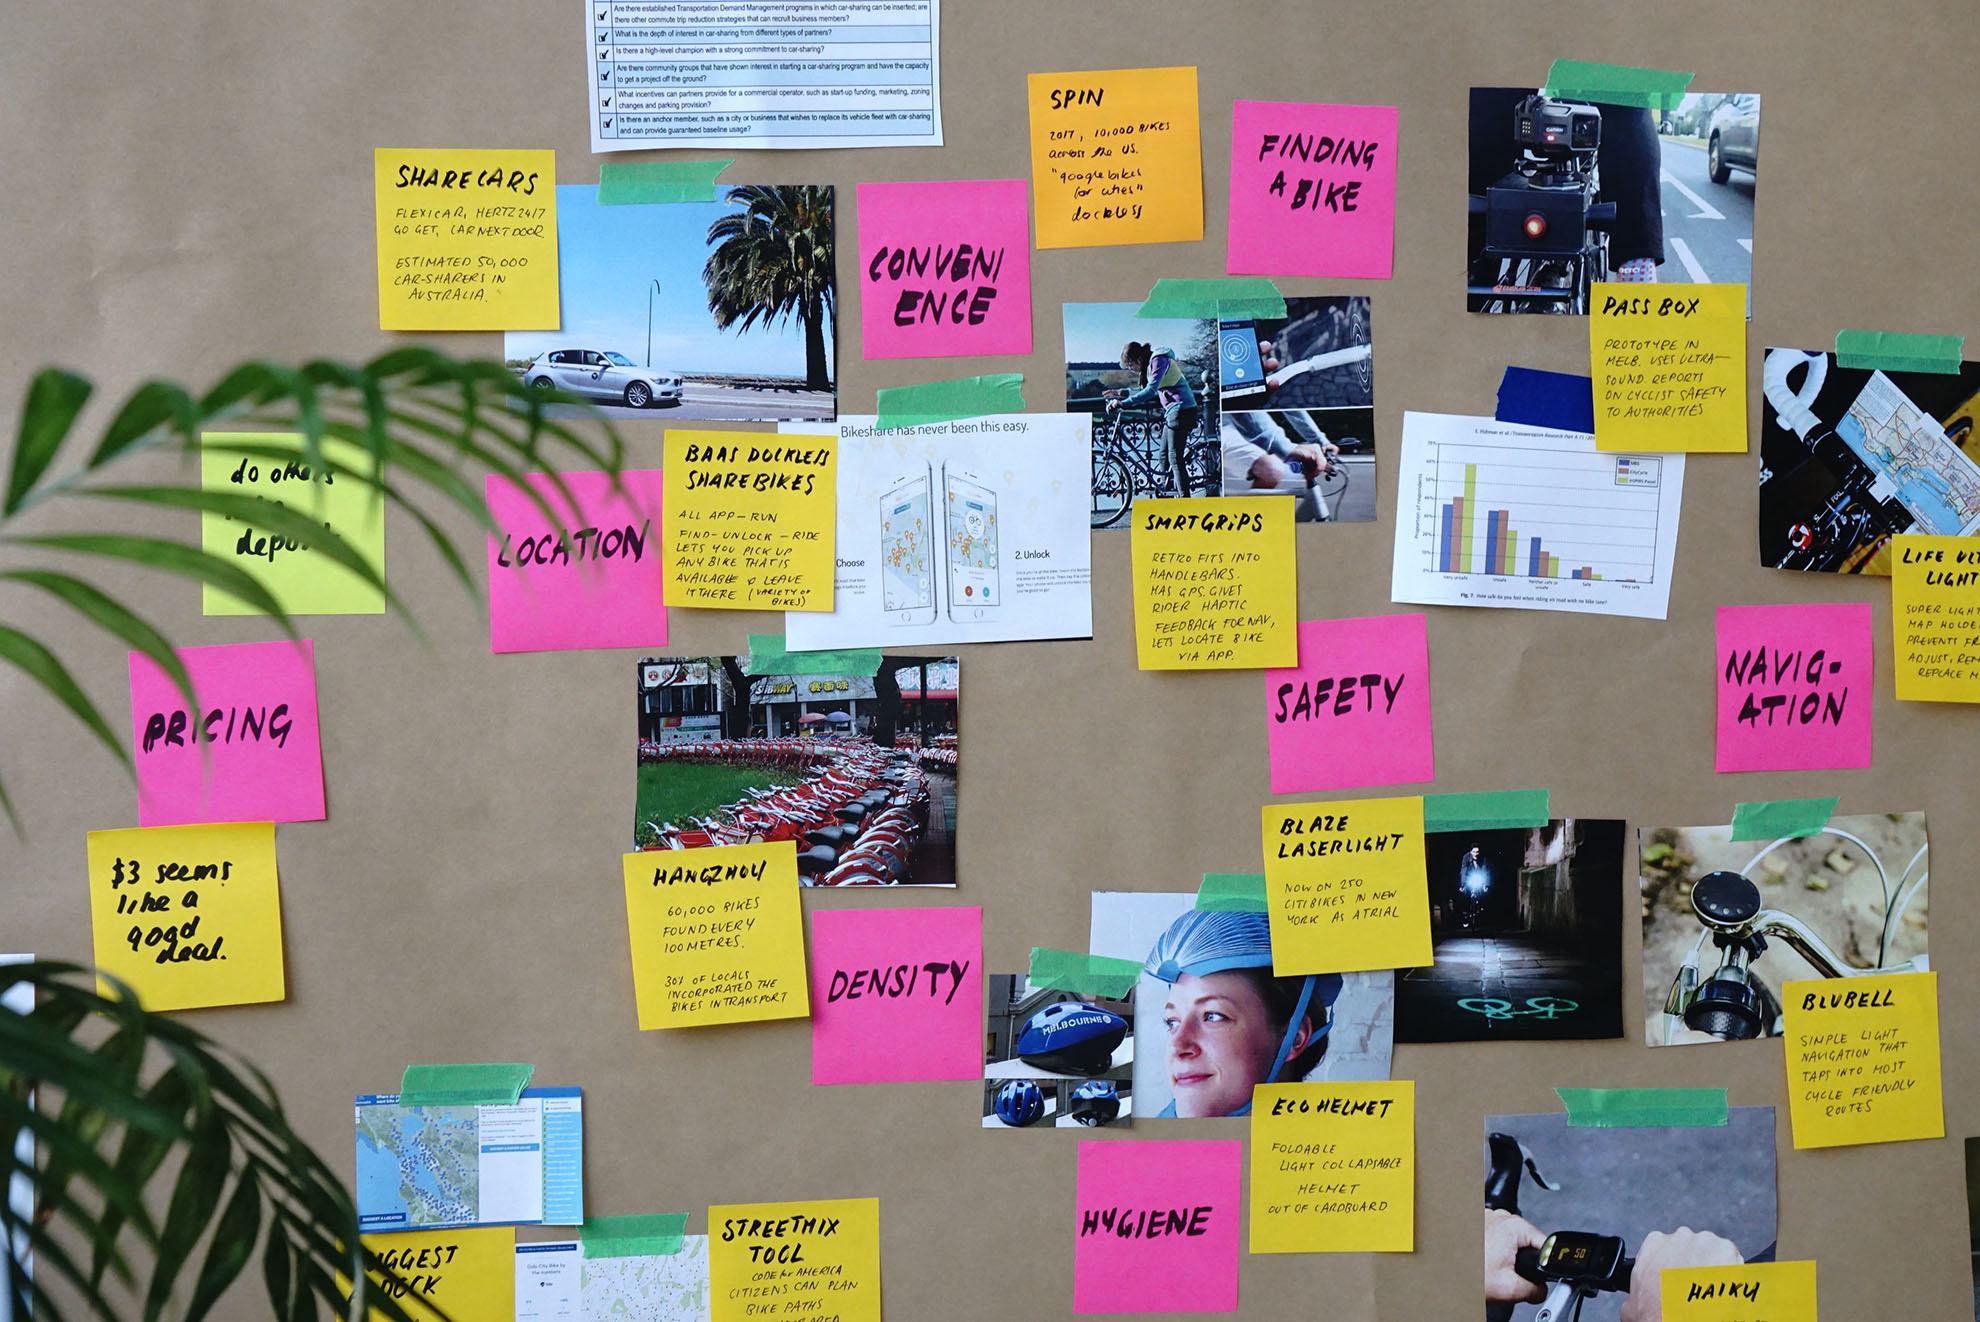 UX Design product research